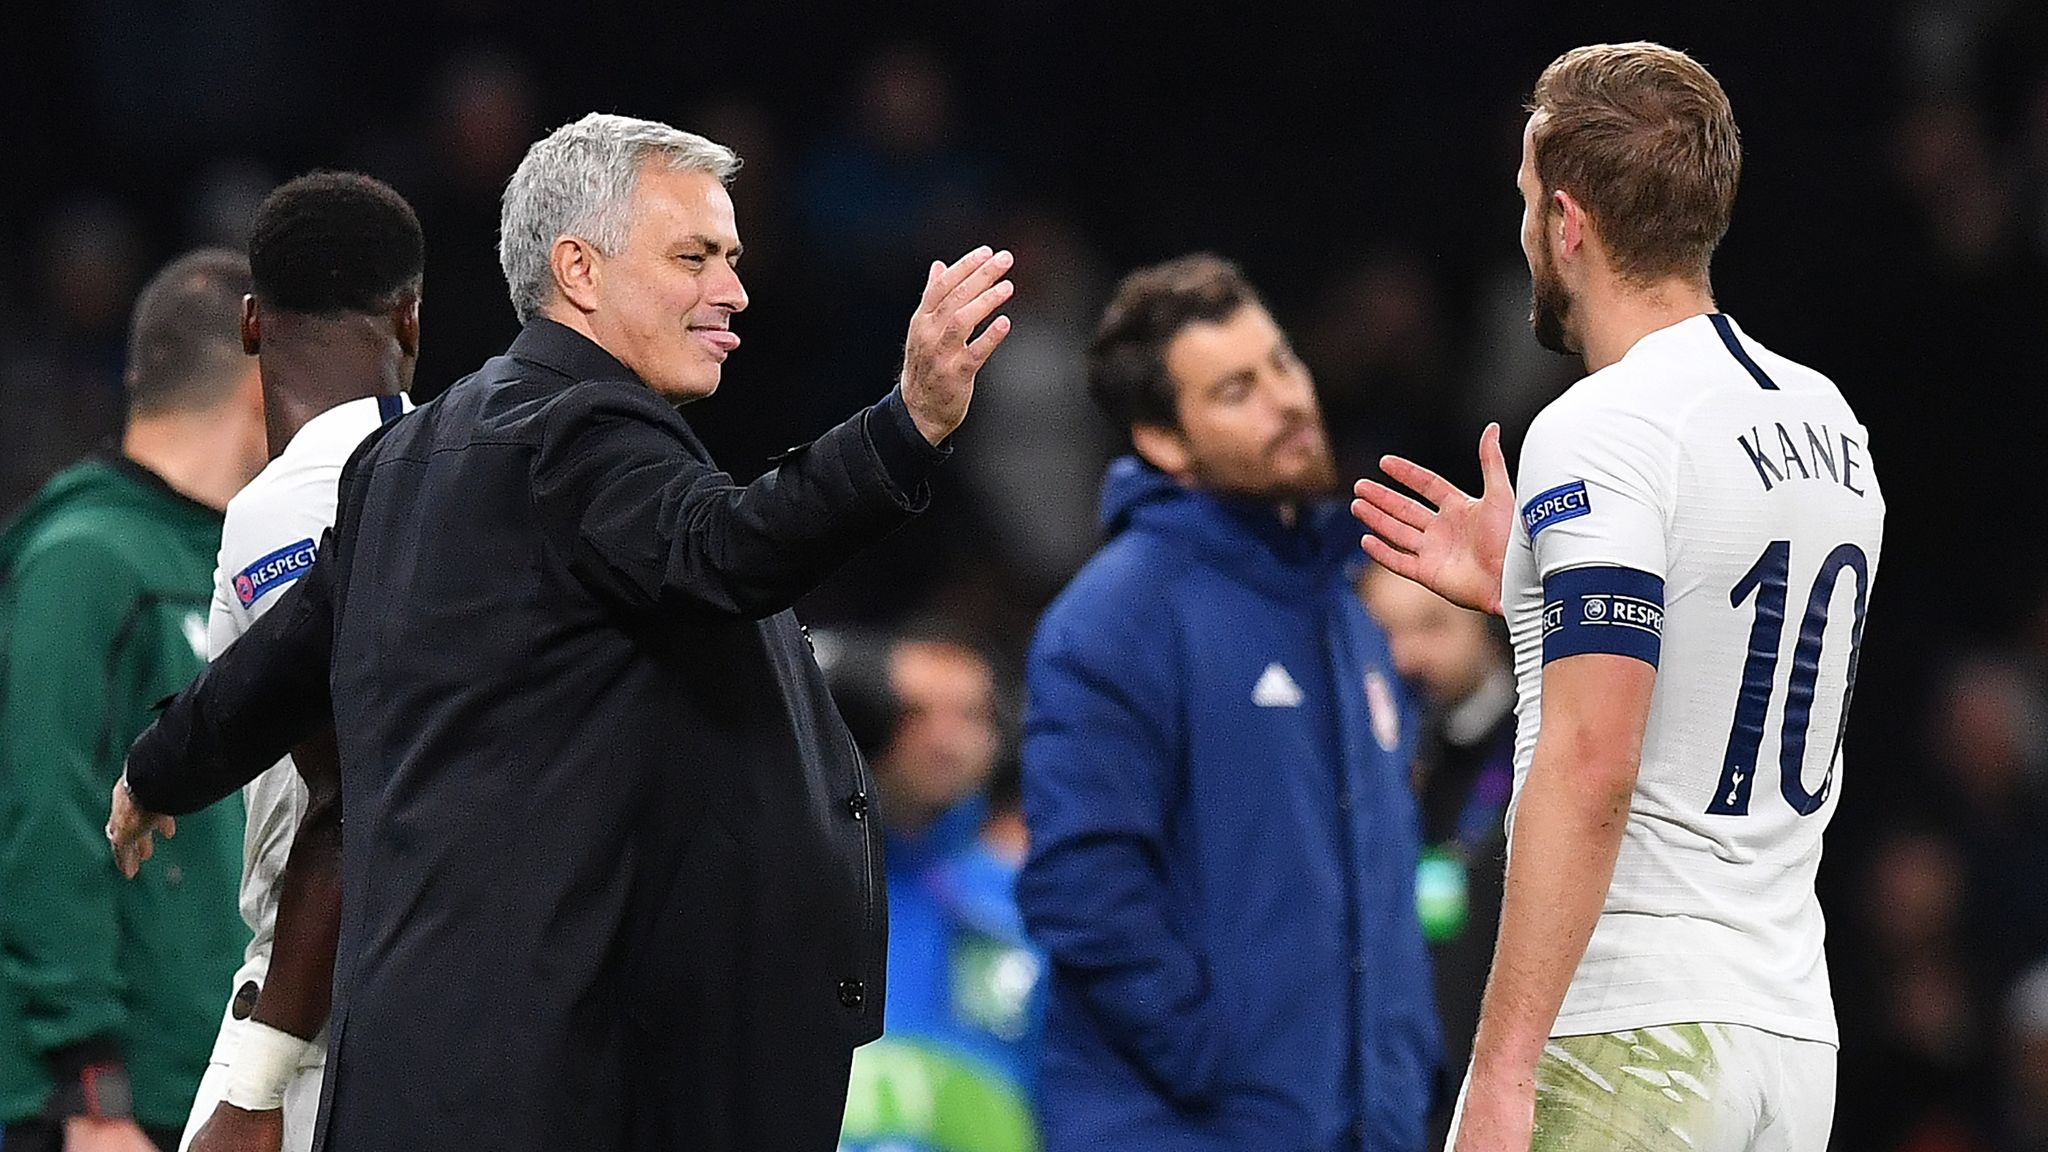 Will Jose Mourinho be a success at Tottenham? The Sunday Supplement panel discuss